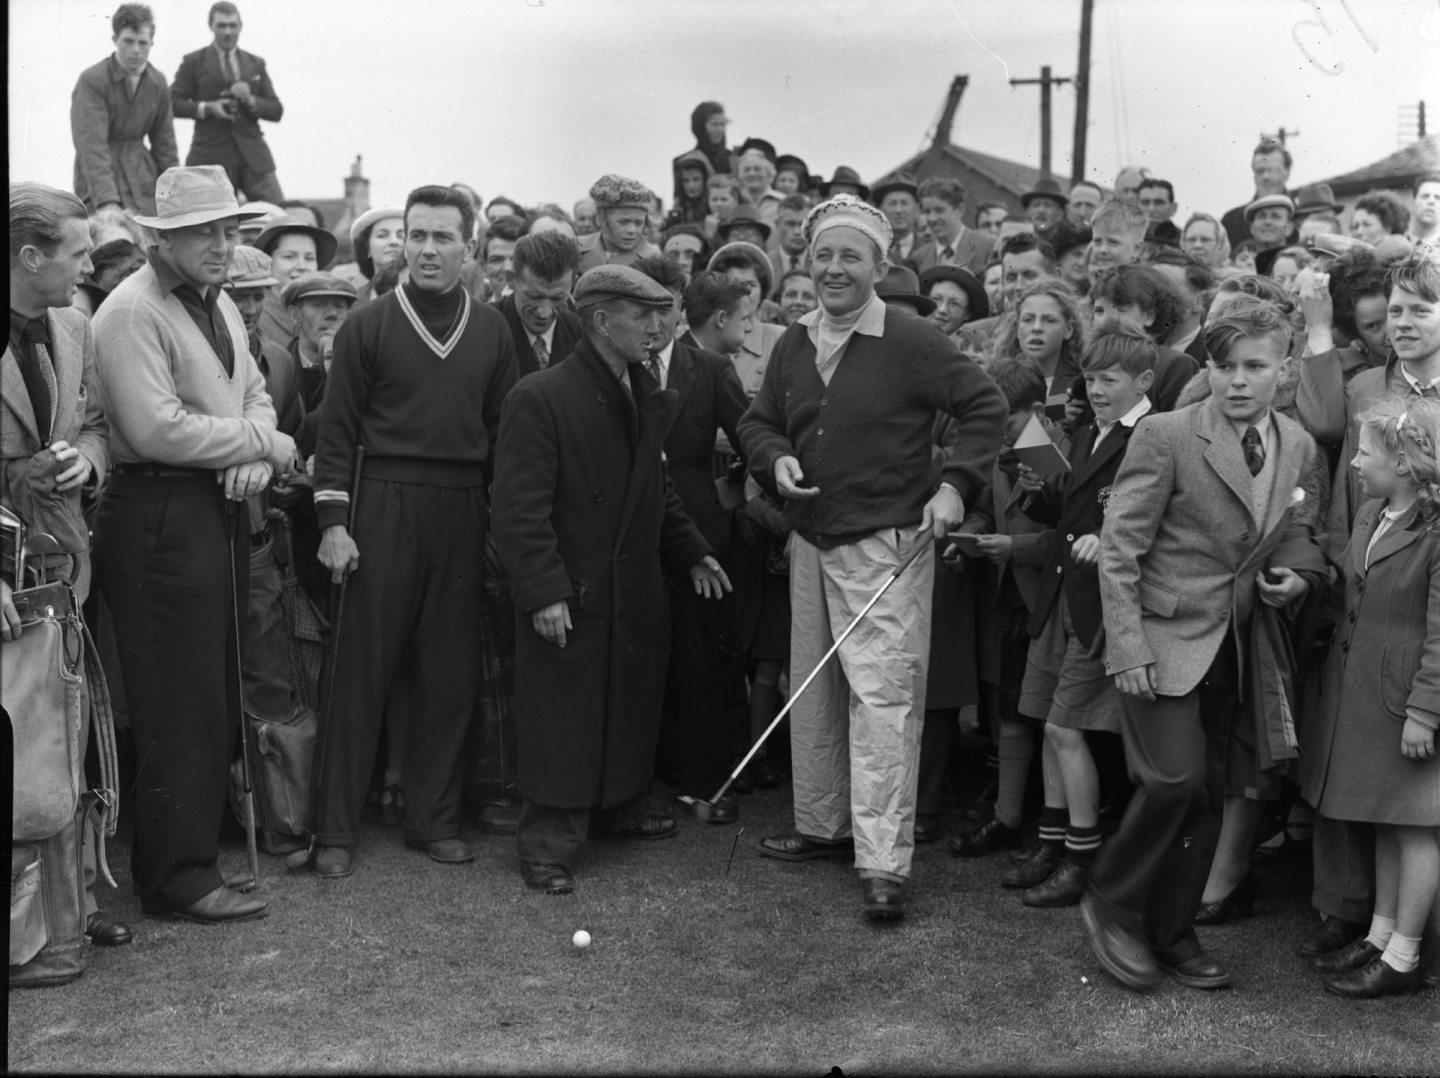 Bing Crosby in St Andrews, playing in the British Amateur Golf Tournament in 1950